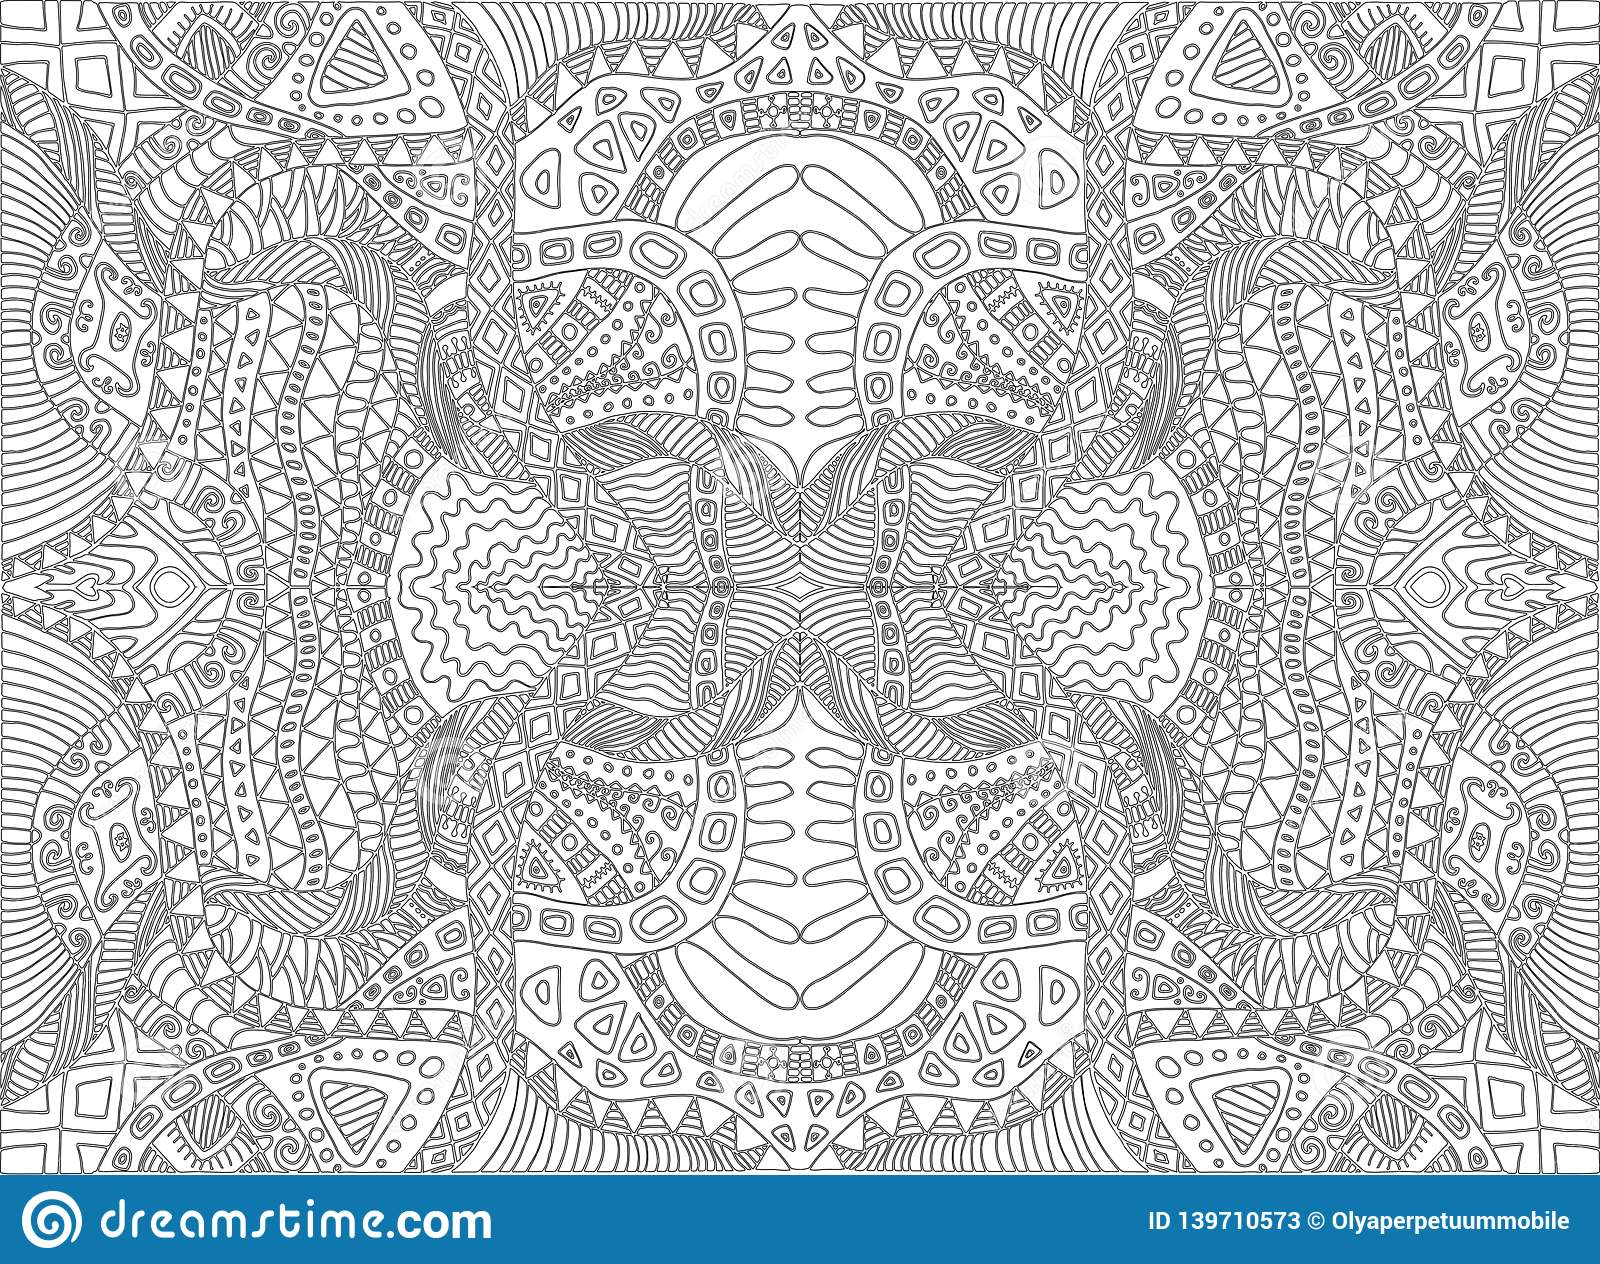 Psychedelic Tribal Surreal Doodle Coloring Page. Hippie Abstract ...